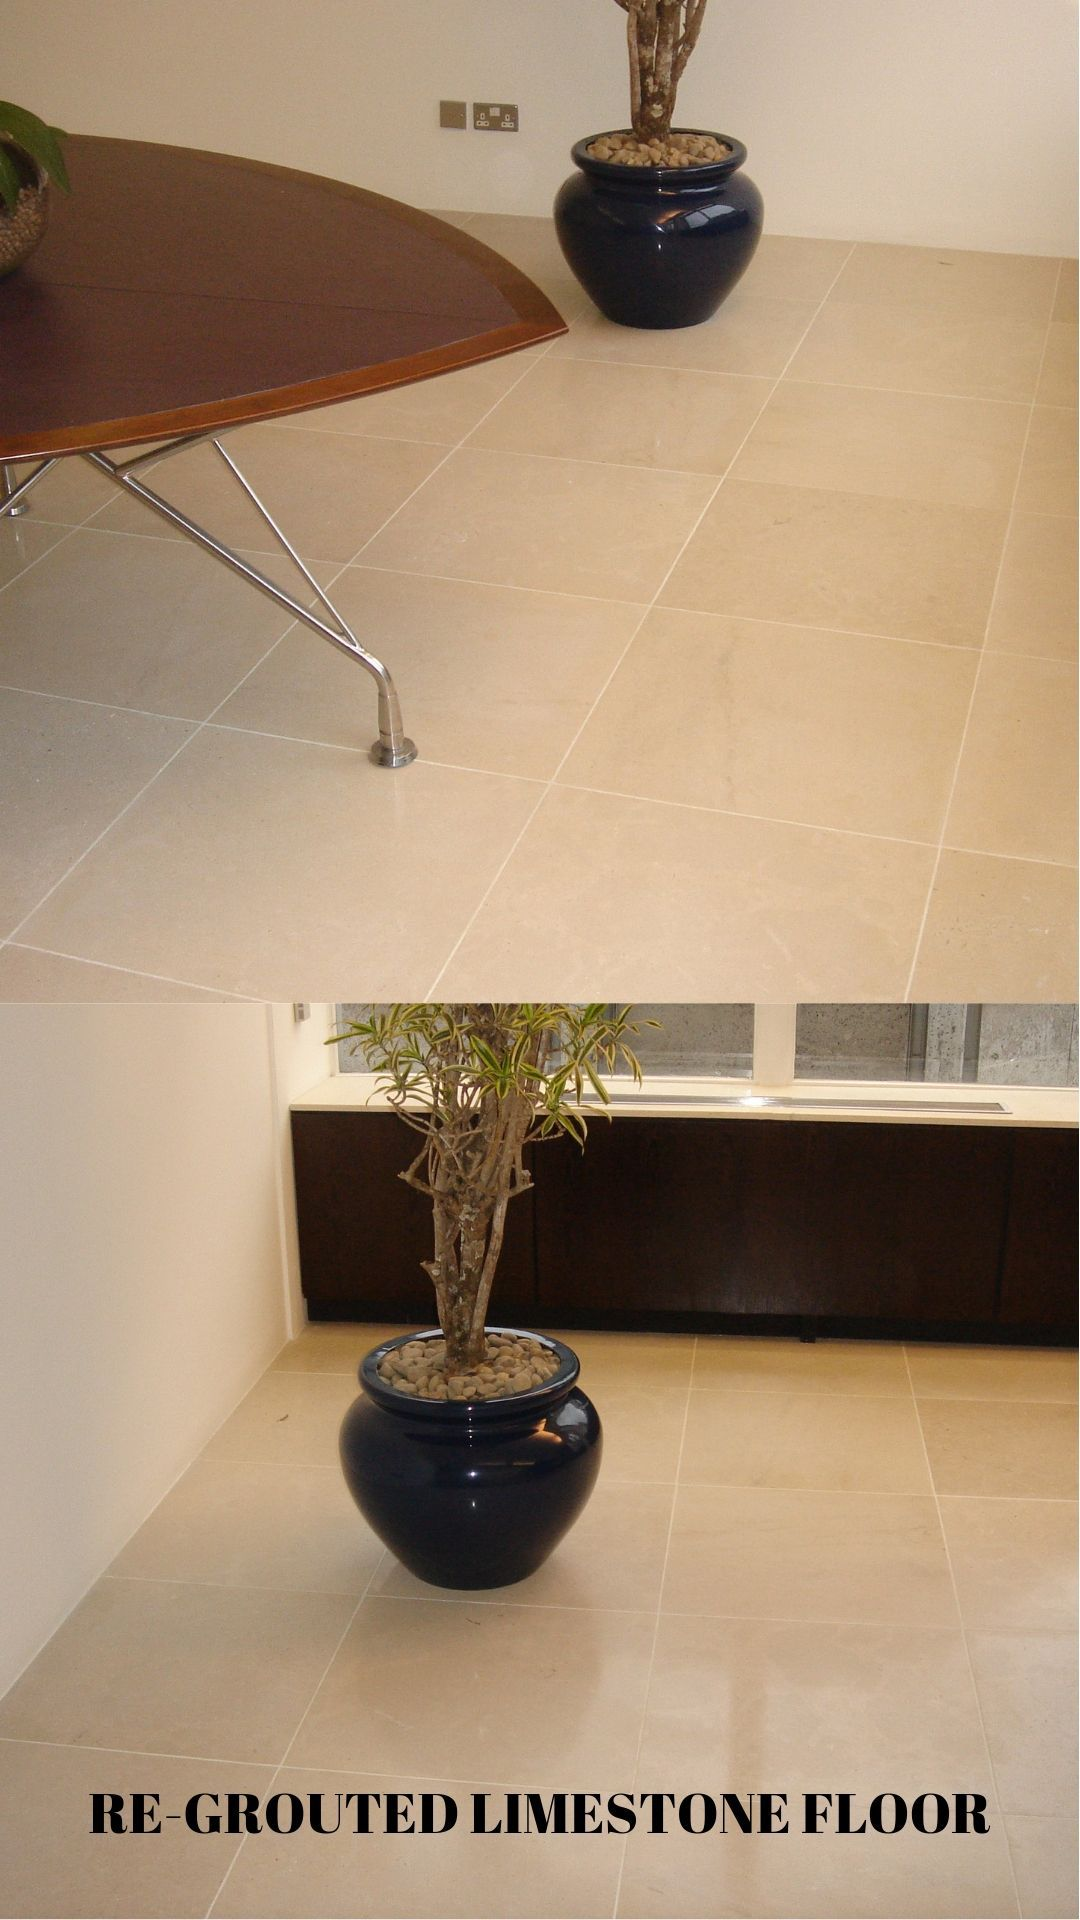 The best way to refresh an old limestone floor is to